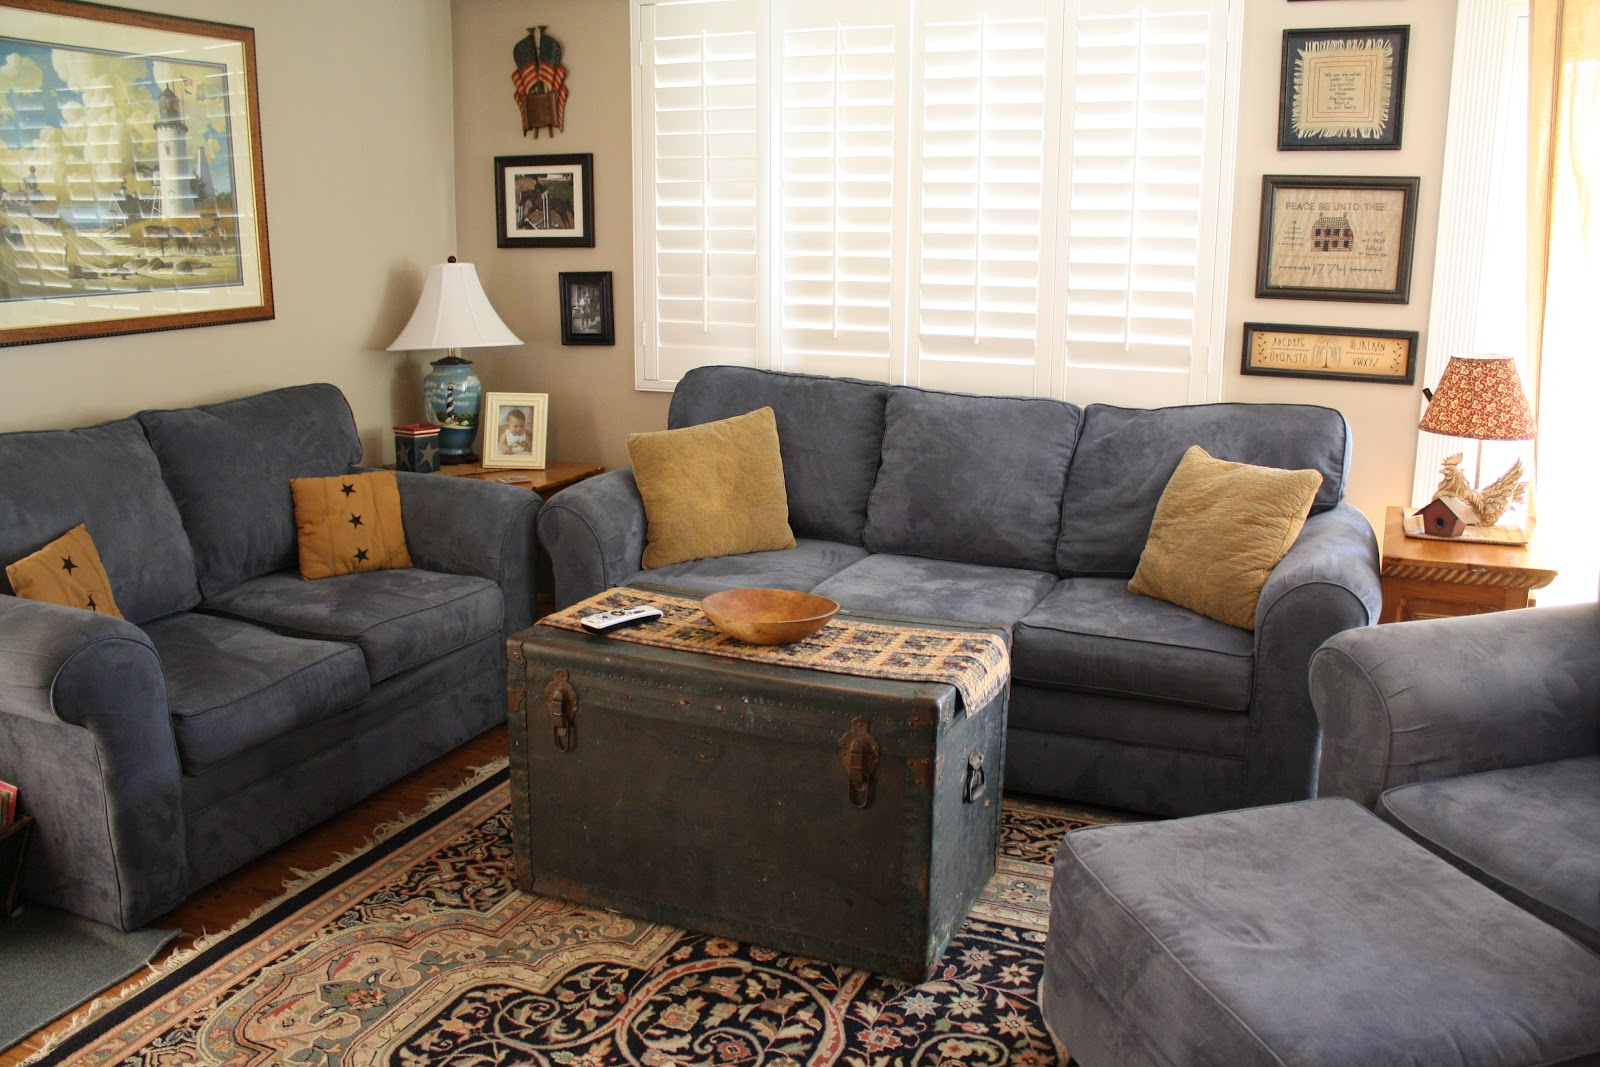 Lovely How To Refill Couch Cushions Cheaply